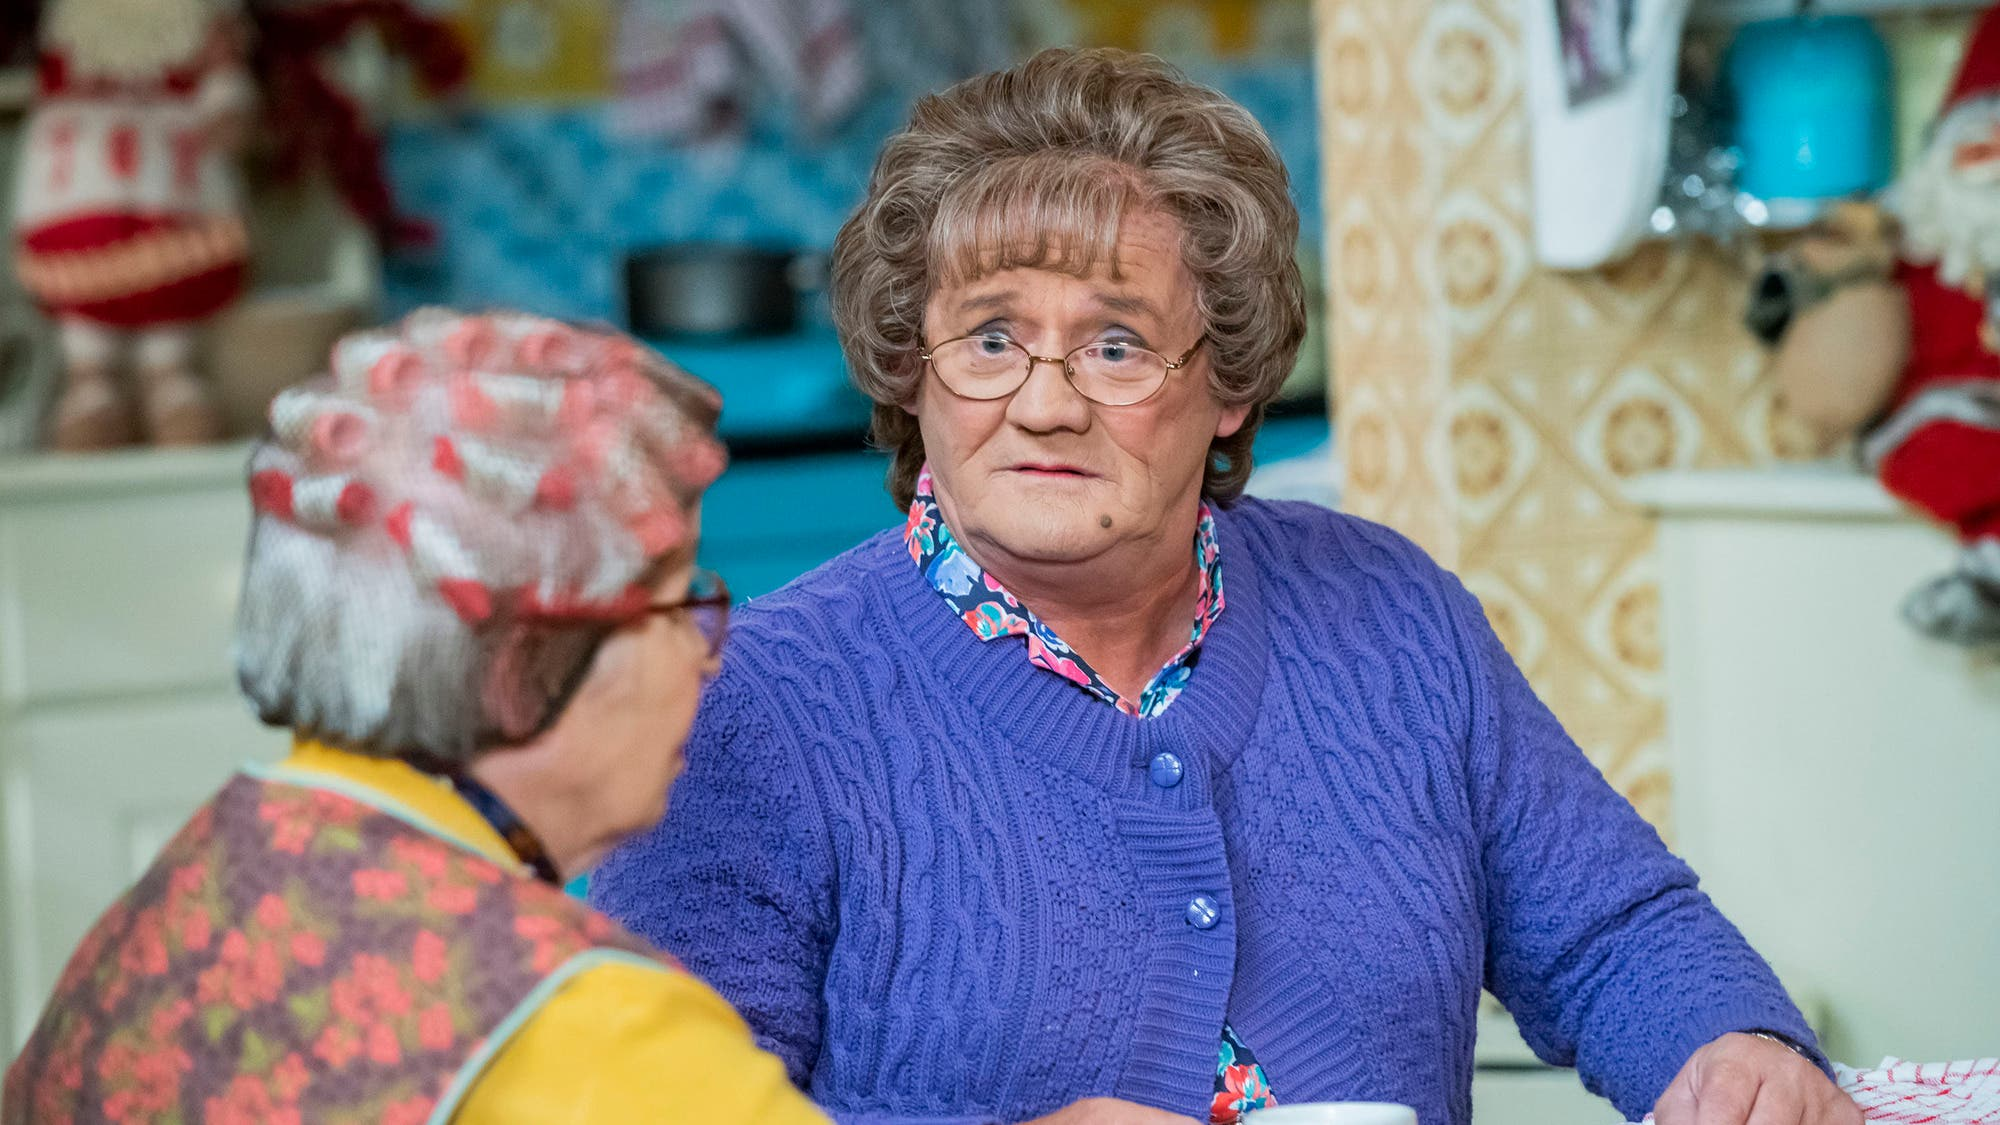 Mrs Brown's Boys Christmas and New Year Special